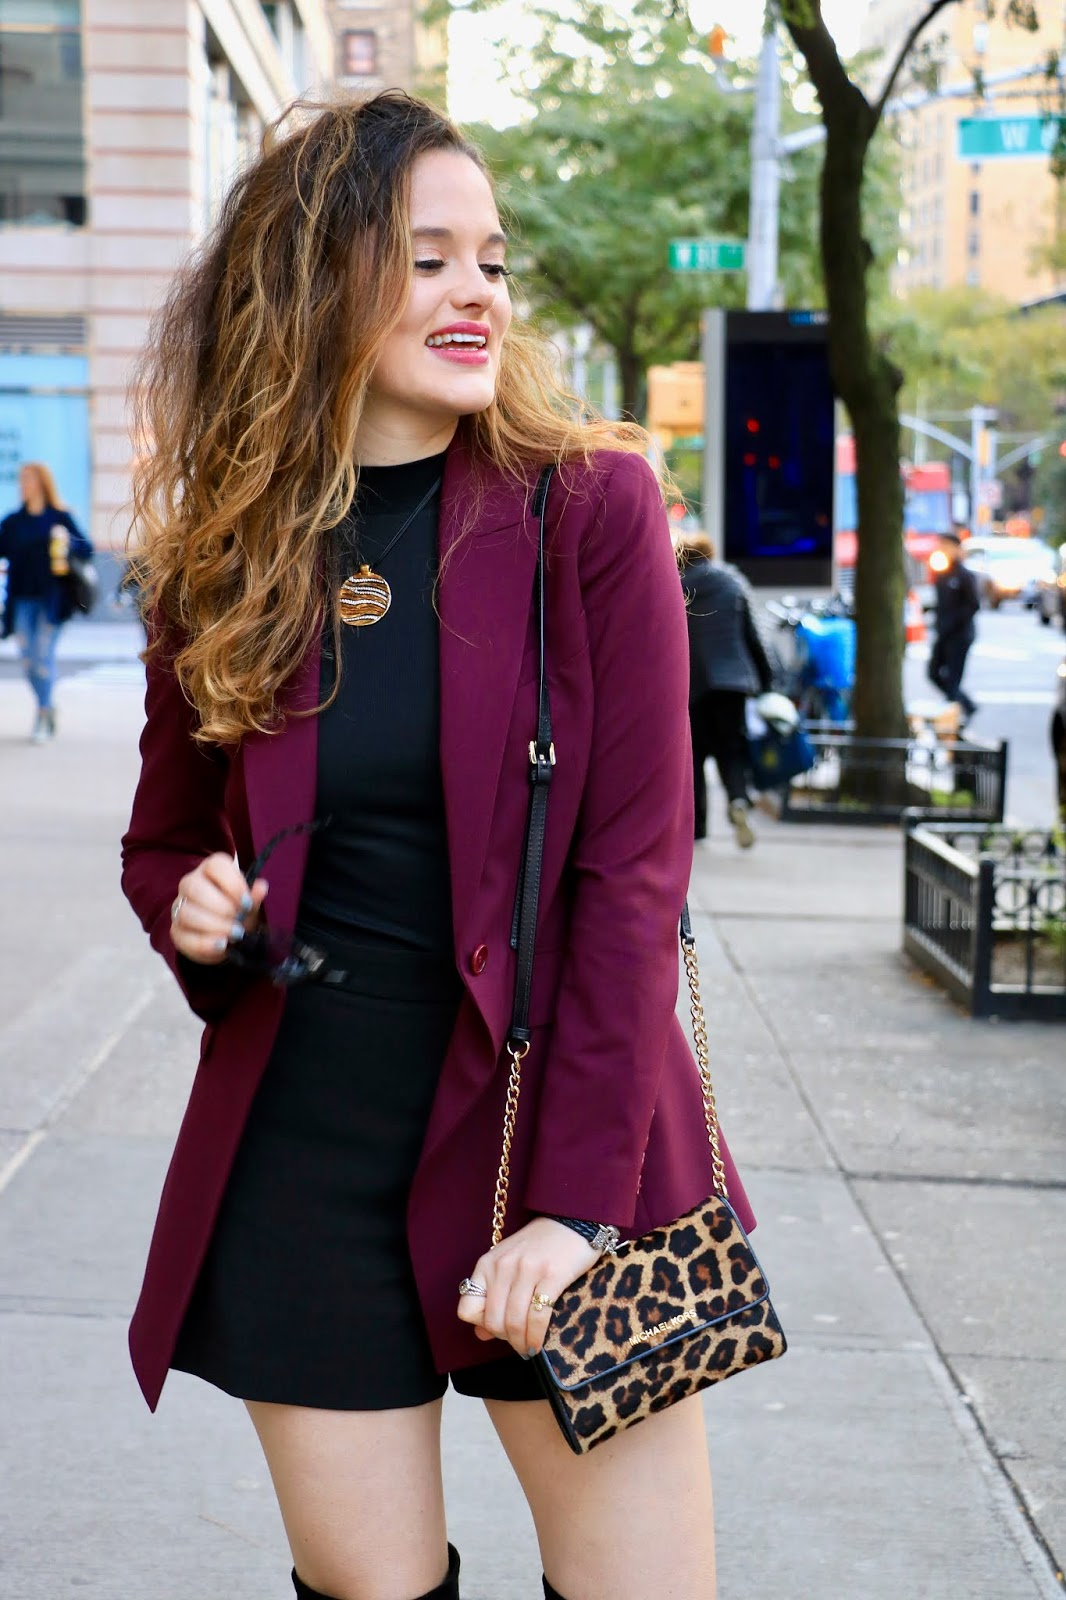 Nyc fashion blogger Kathleen Harper's shorts outfit ideas for work